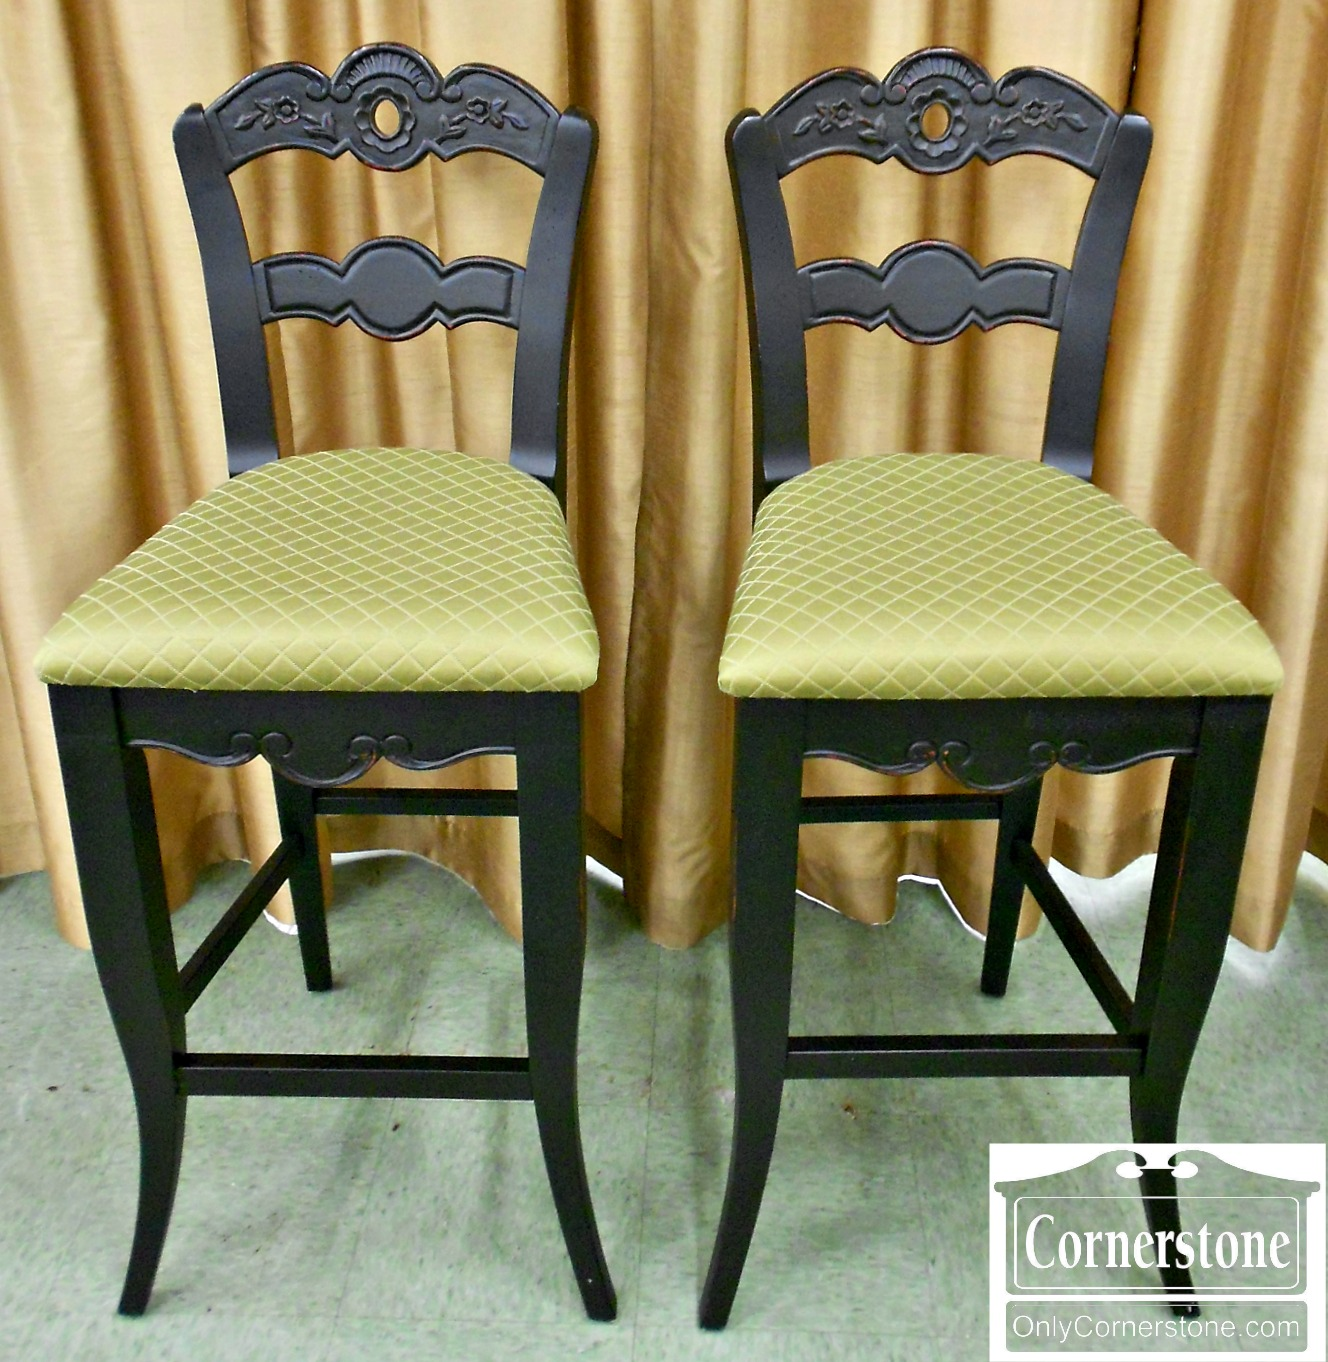 5666-404 Pair of Counter Stools